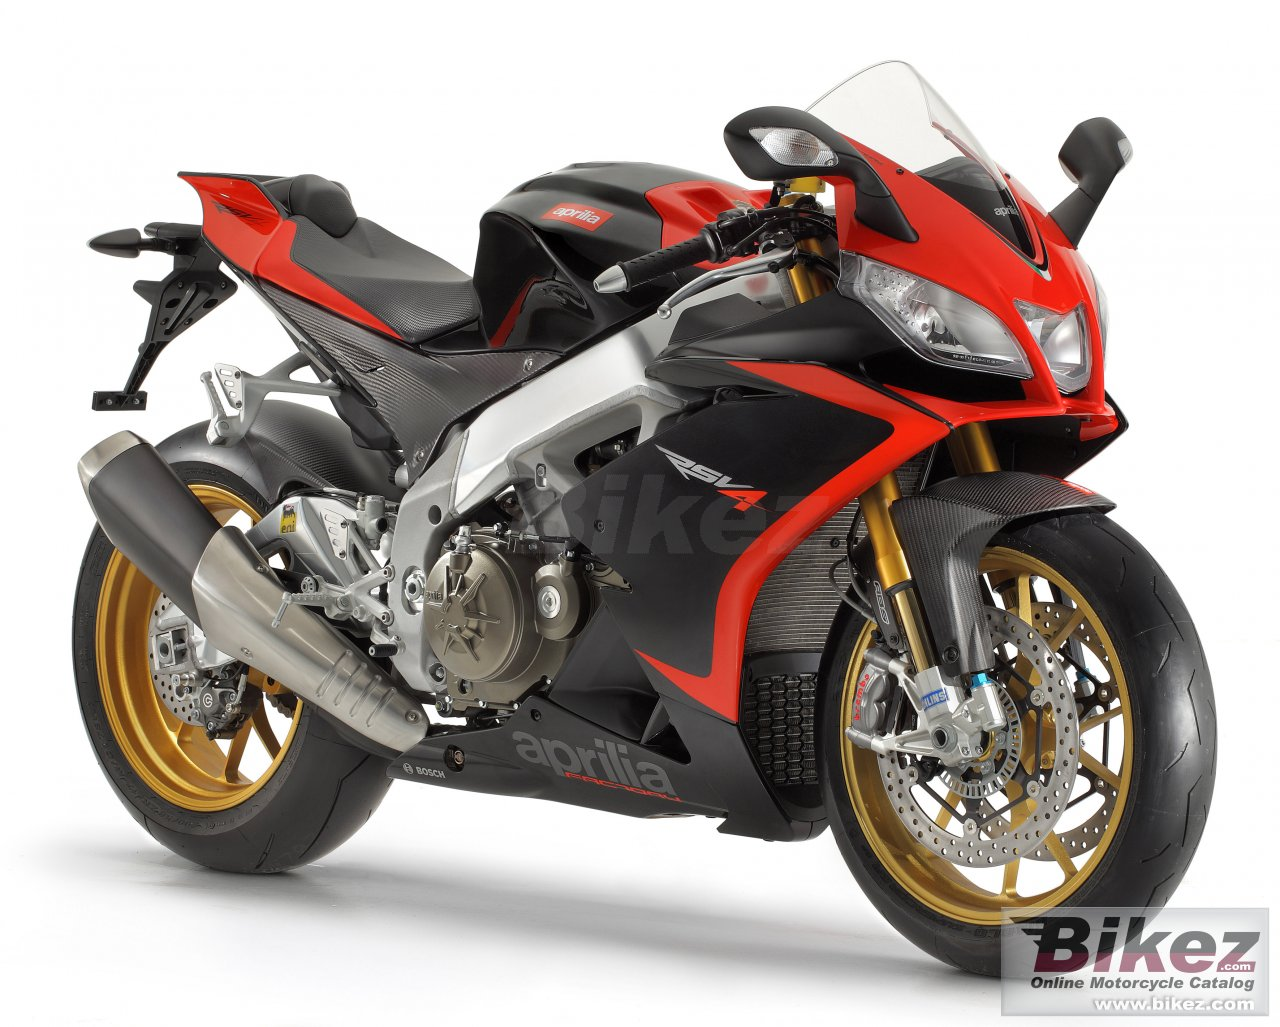 Big Aprilia rsv4 factory aprc picture and wallpaper from Bikez.com